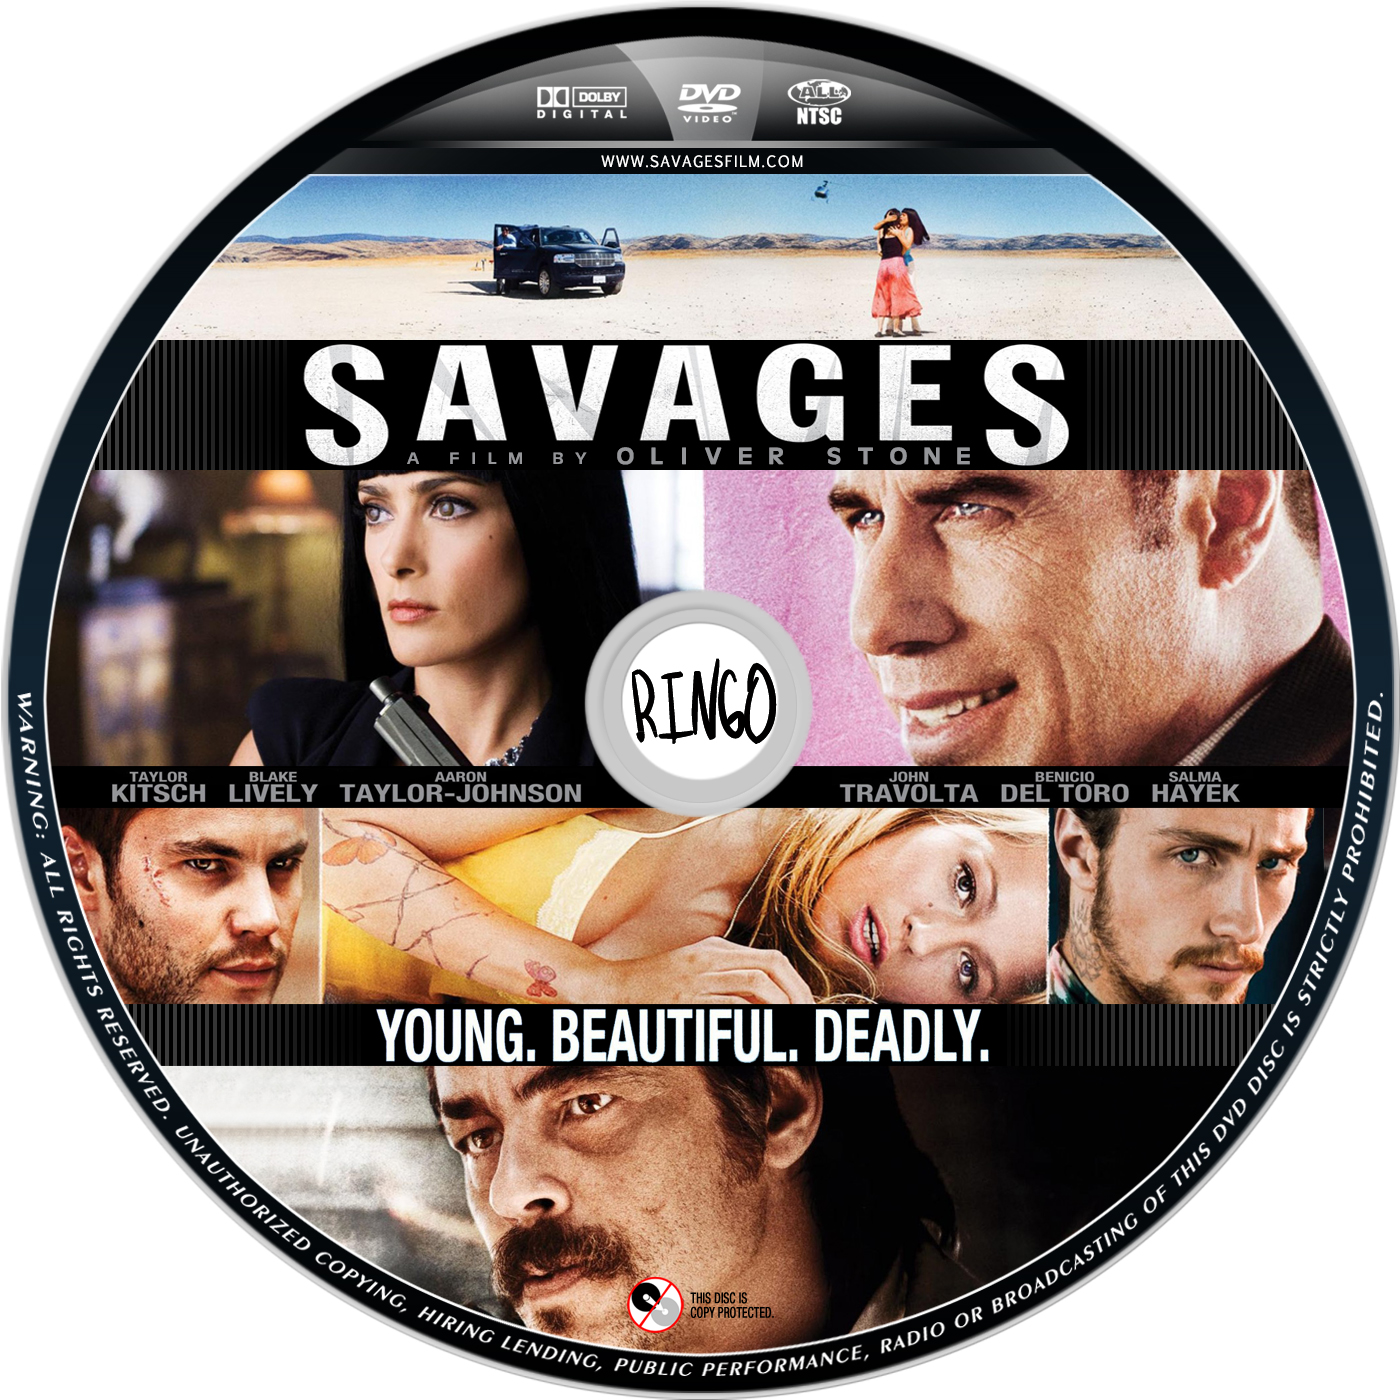 Savages movie page dvd, blu- ray, digital hd, on demand, trailers, downloads